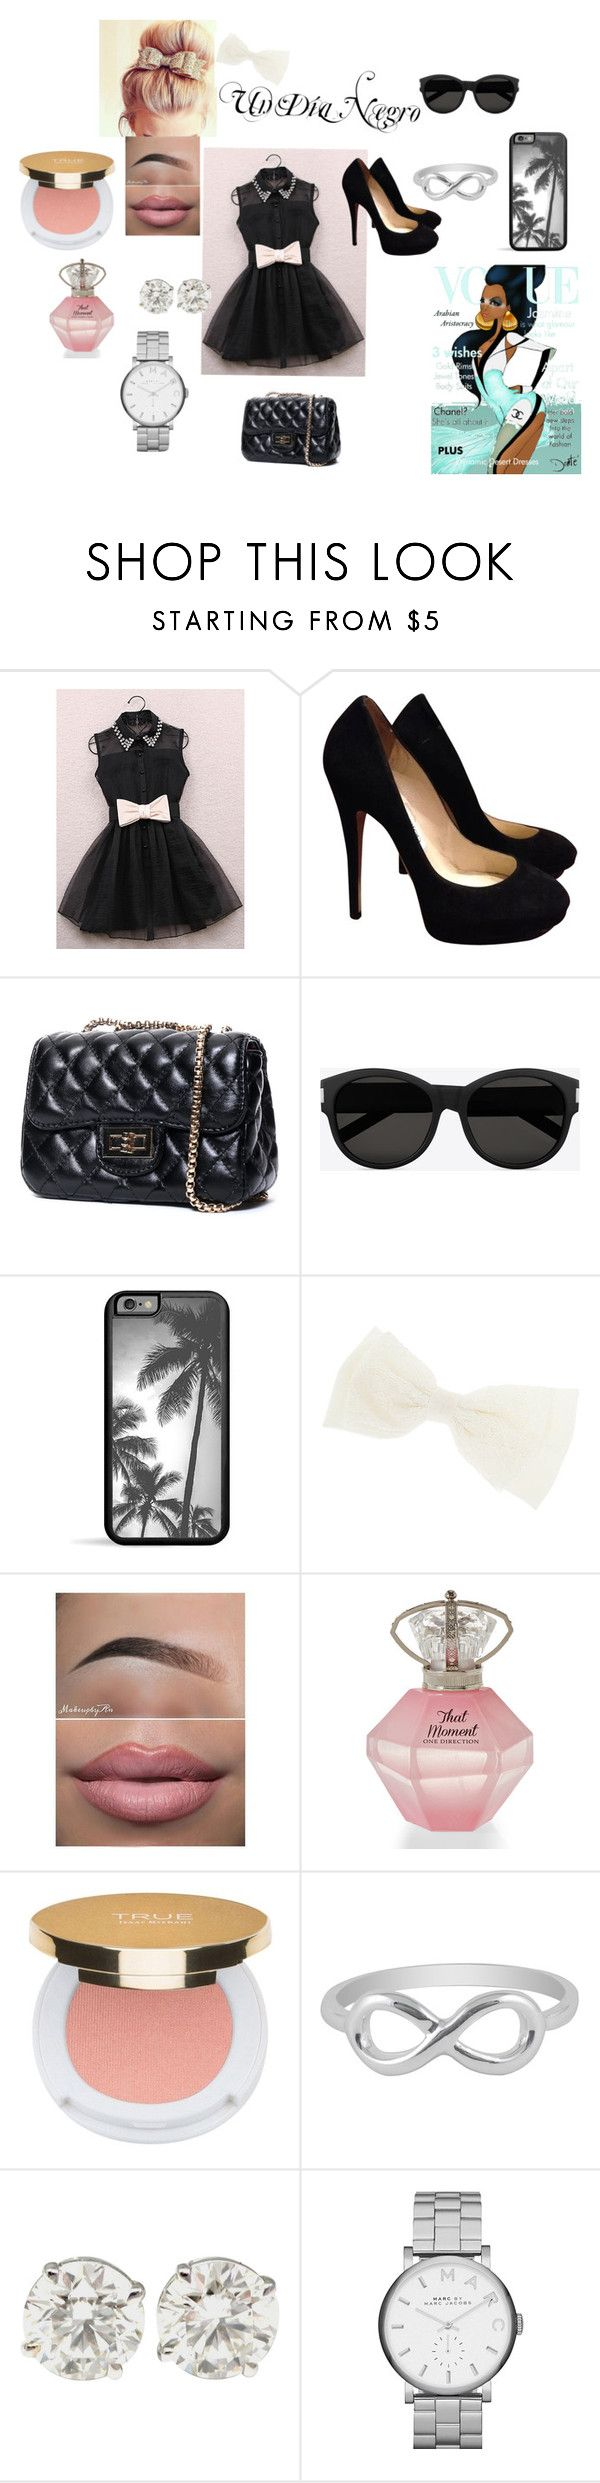 #UnDiaNegro by olgasanchez09 on Polyvore featuring moda, Jimmy Choo, Marc by Marc Jacobs, Jewel Exclusive, Yves Saint Laurent, Isaac Mizrahi and Disney